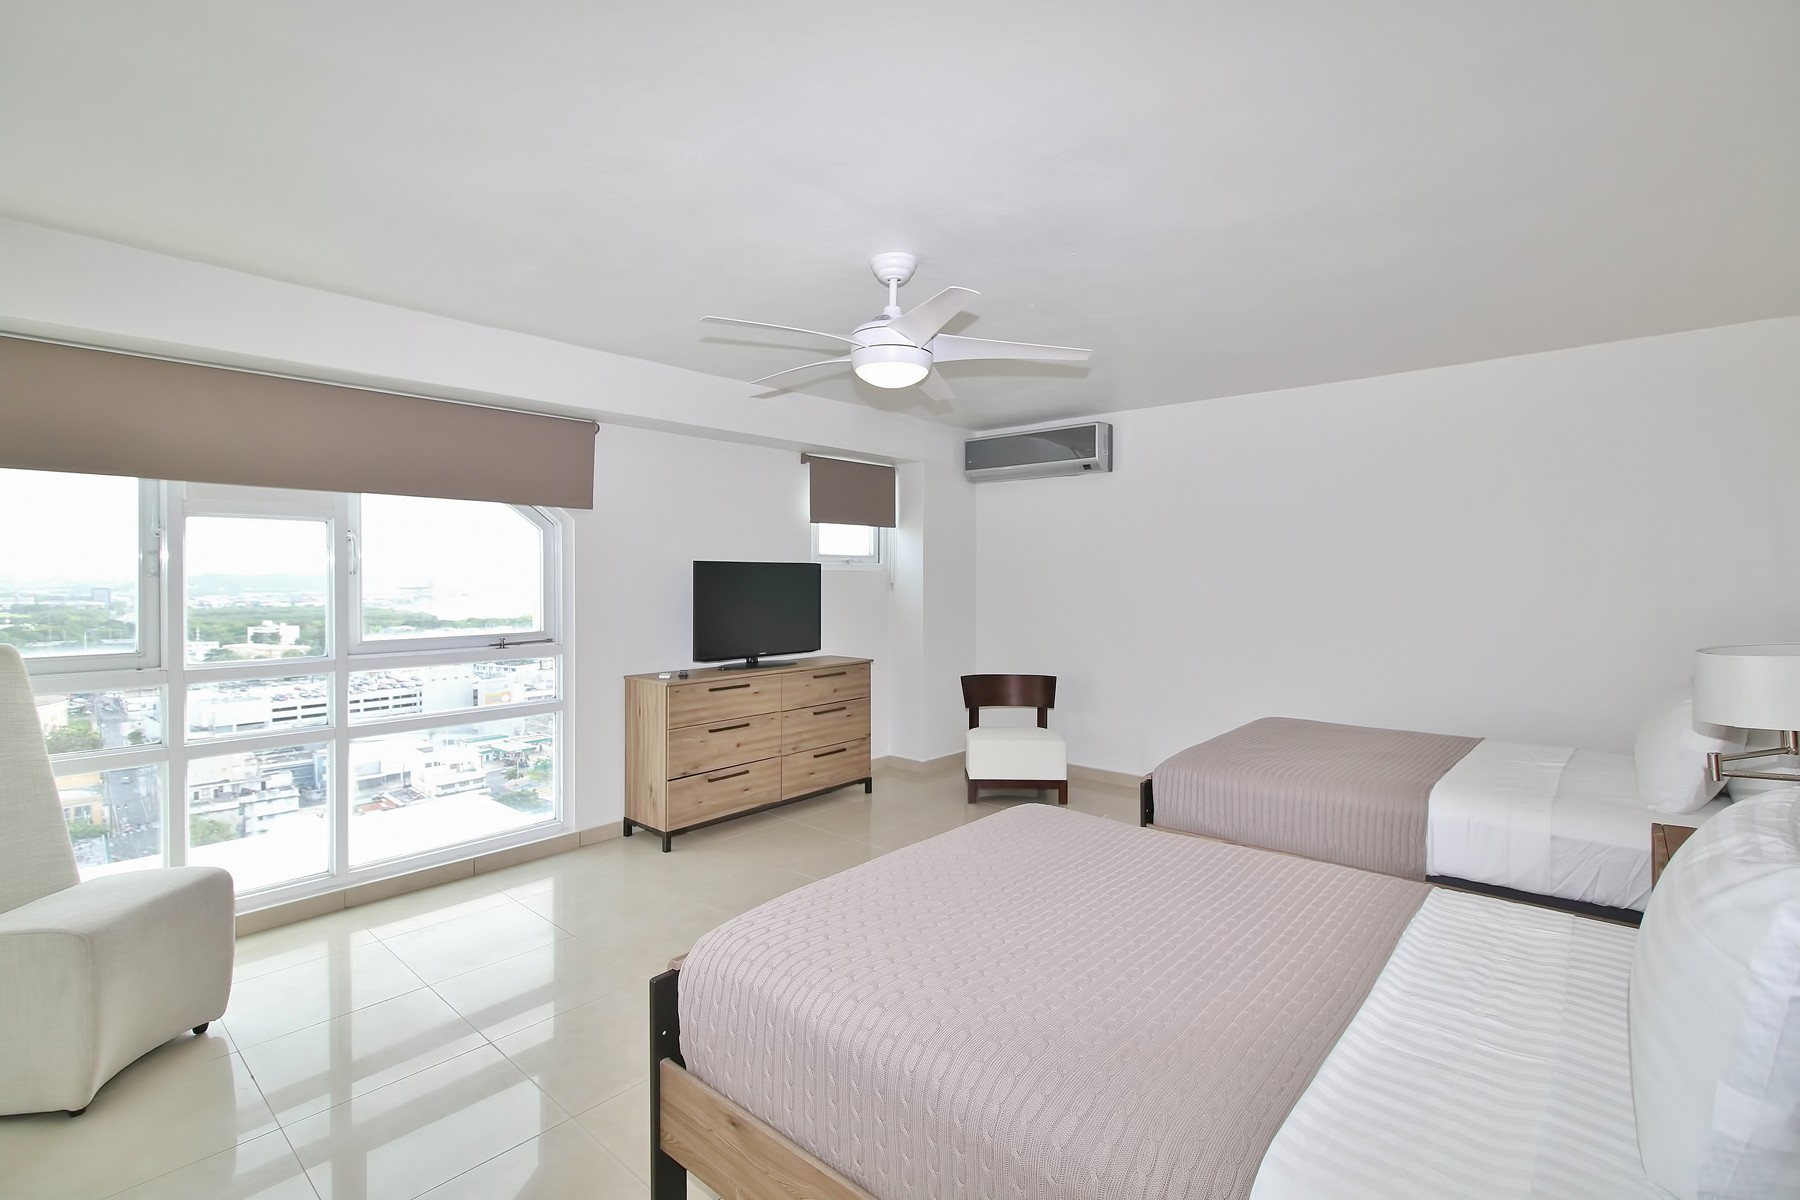 Additional photo for property listing at Southwest Skyline Penthouse at 303 Villamil 303-305 Calle Villamil, PH 2012 Metro Plaza, DoSa San Juan, Puerto Rico 00907 Puerto Rico